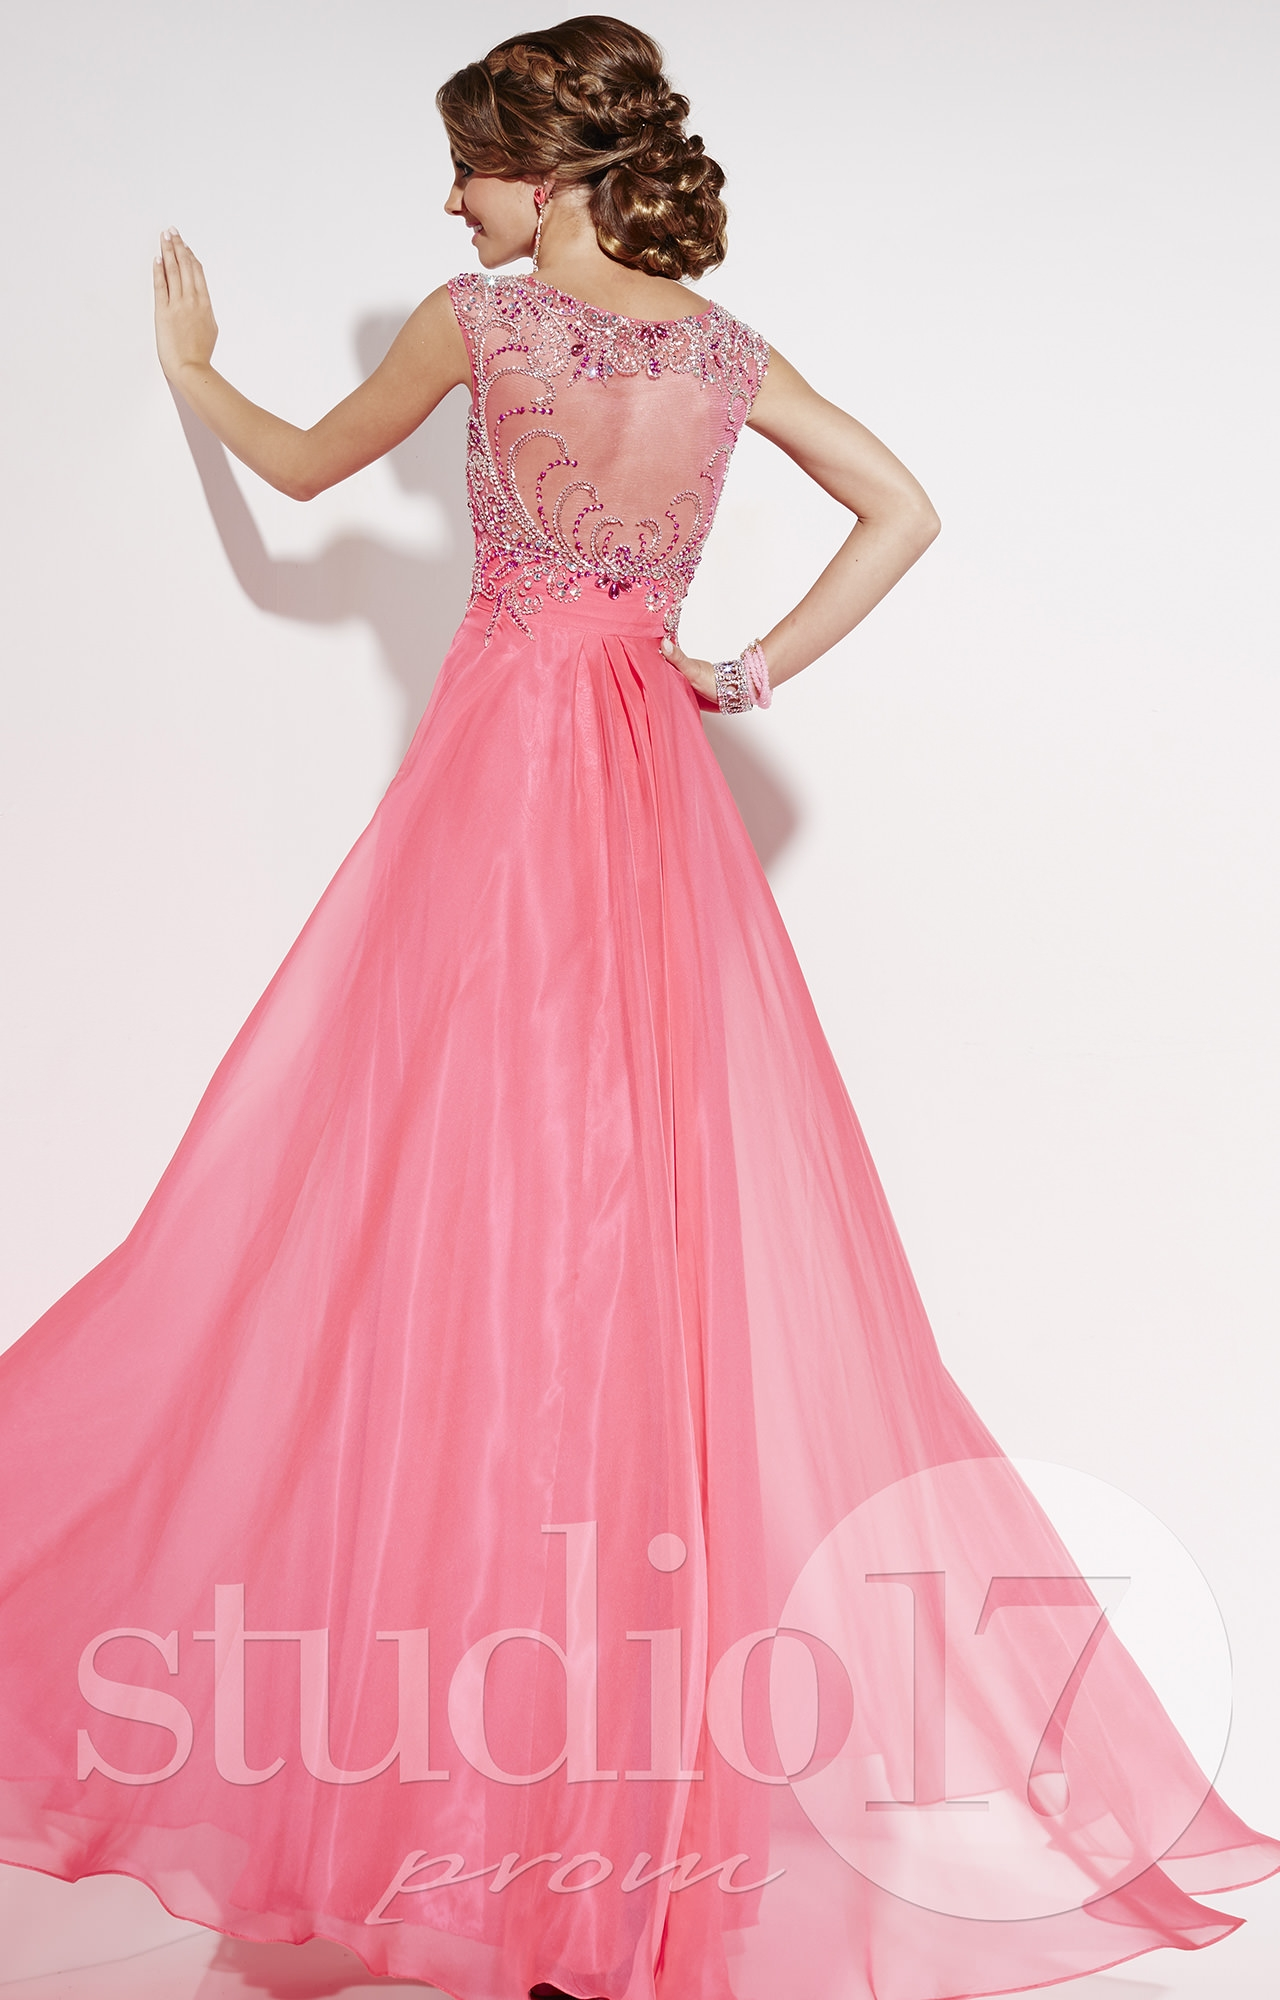 Studio 17 12551 Reach For The Stars Gown Prom Dress